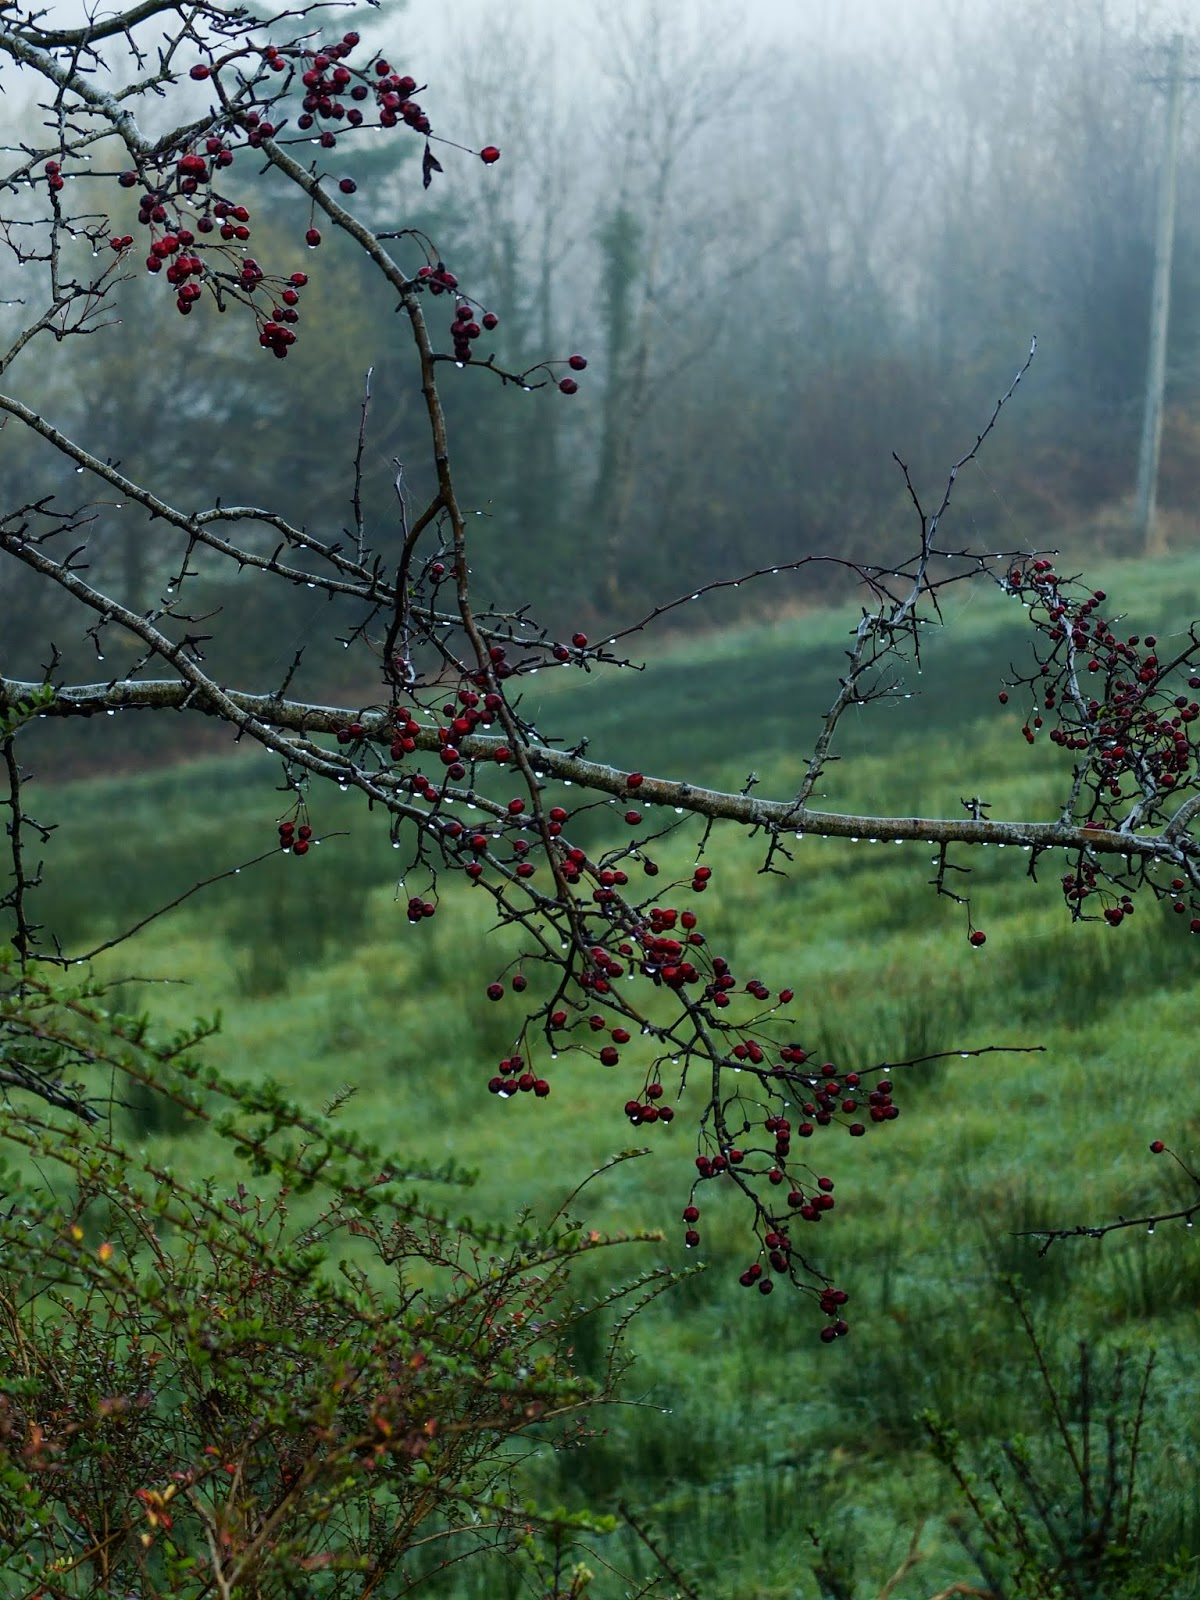 Hawthorn berries on bare tree branches covered in dew on a misty hillside.